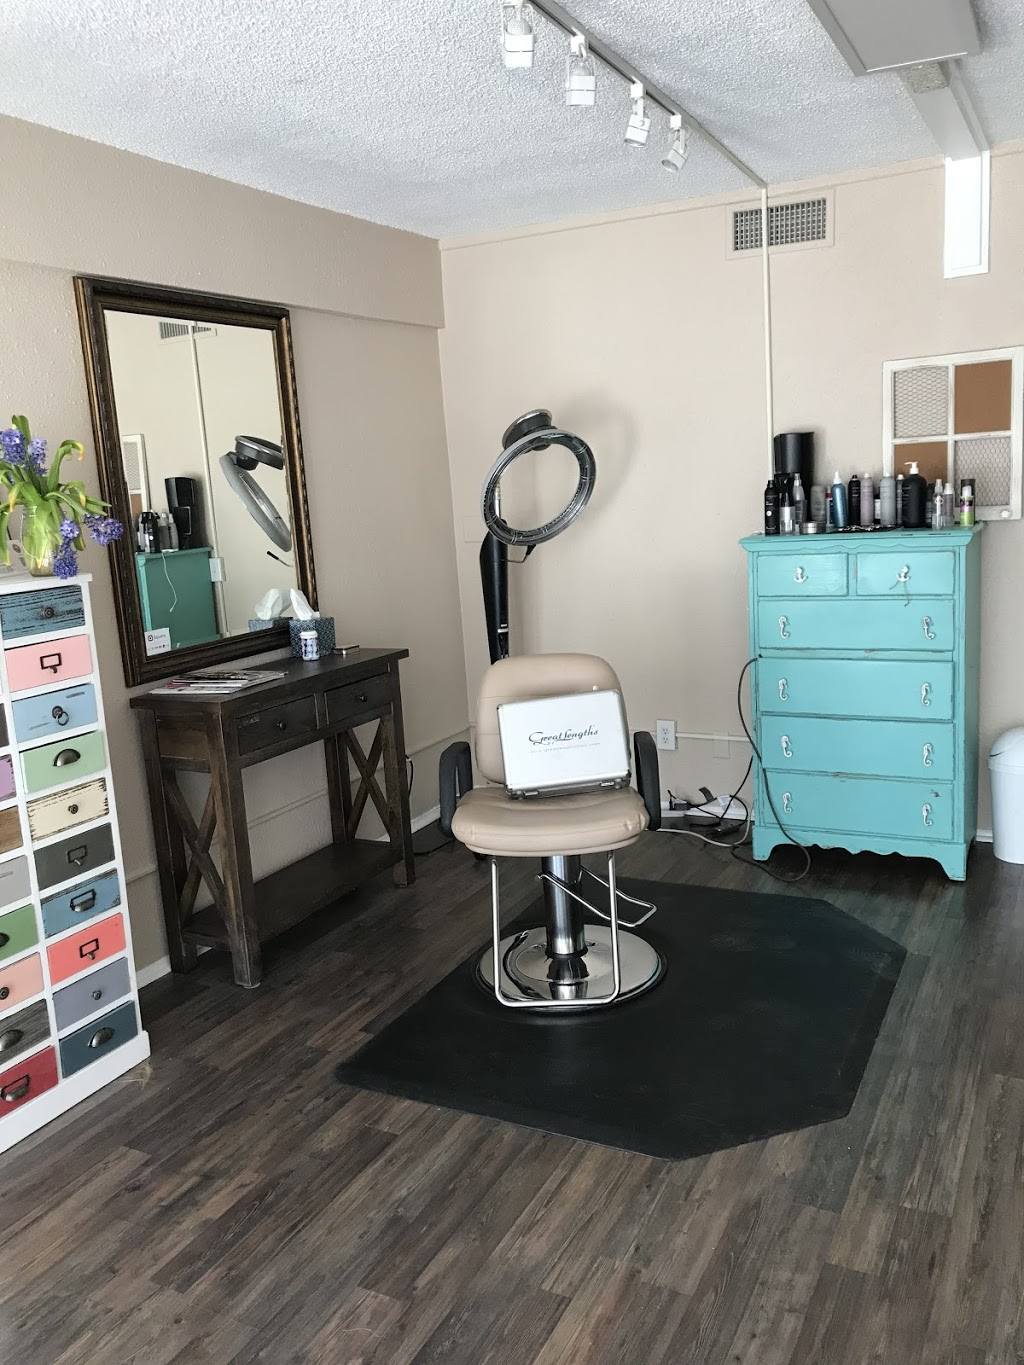 Hair Creations by Tish - hair care  | Photo 1 of 10 | Address: 7312 Central Ave, St. Petersburg, FL 33707, USA | Phone: (727) 252-9056